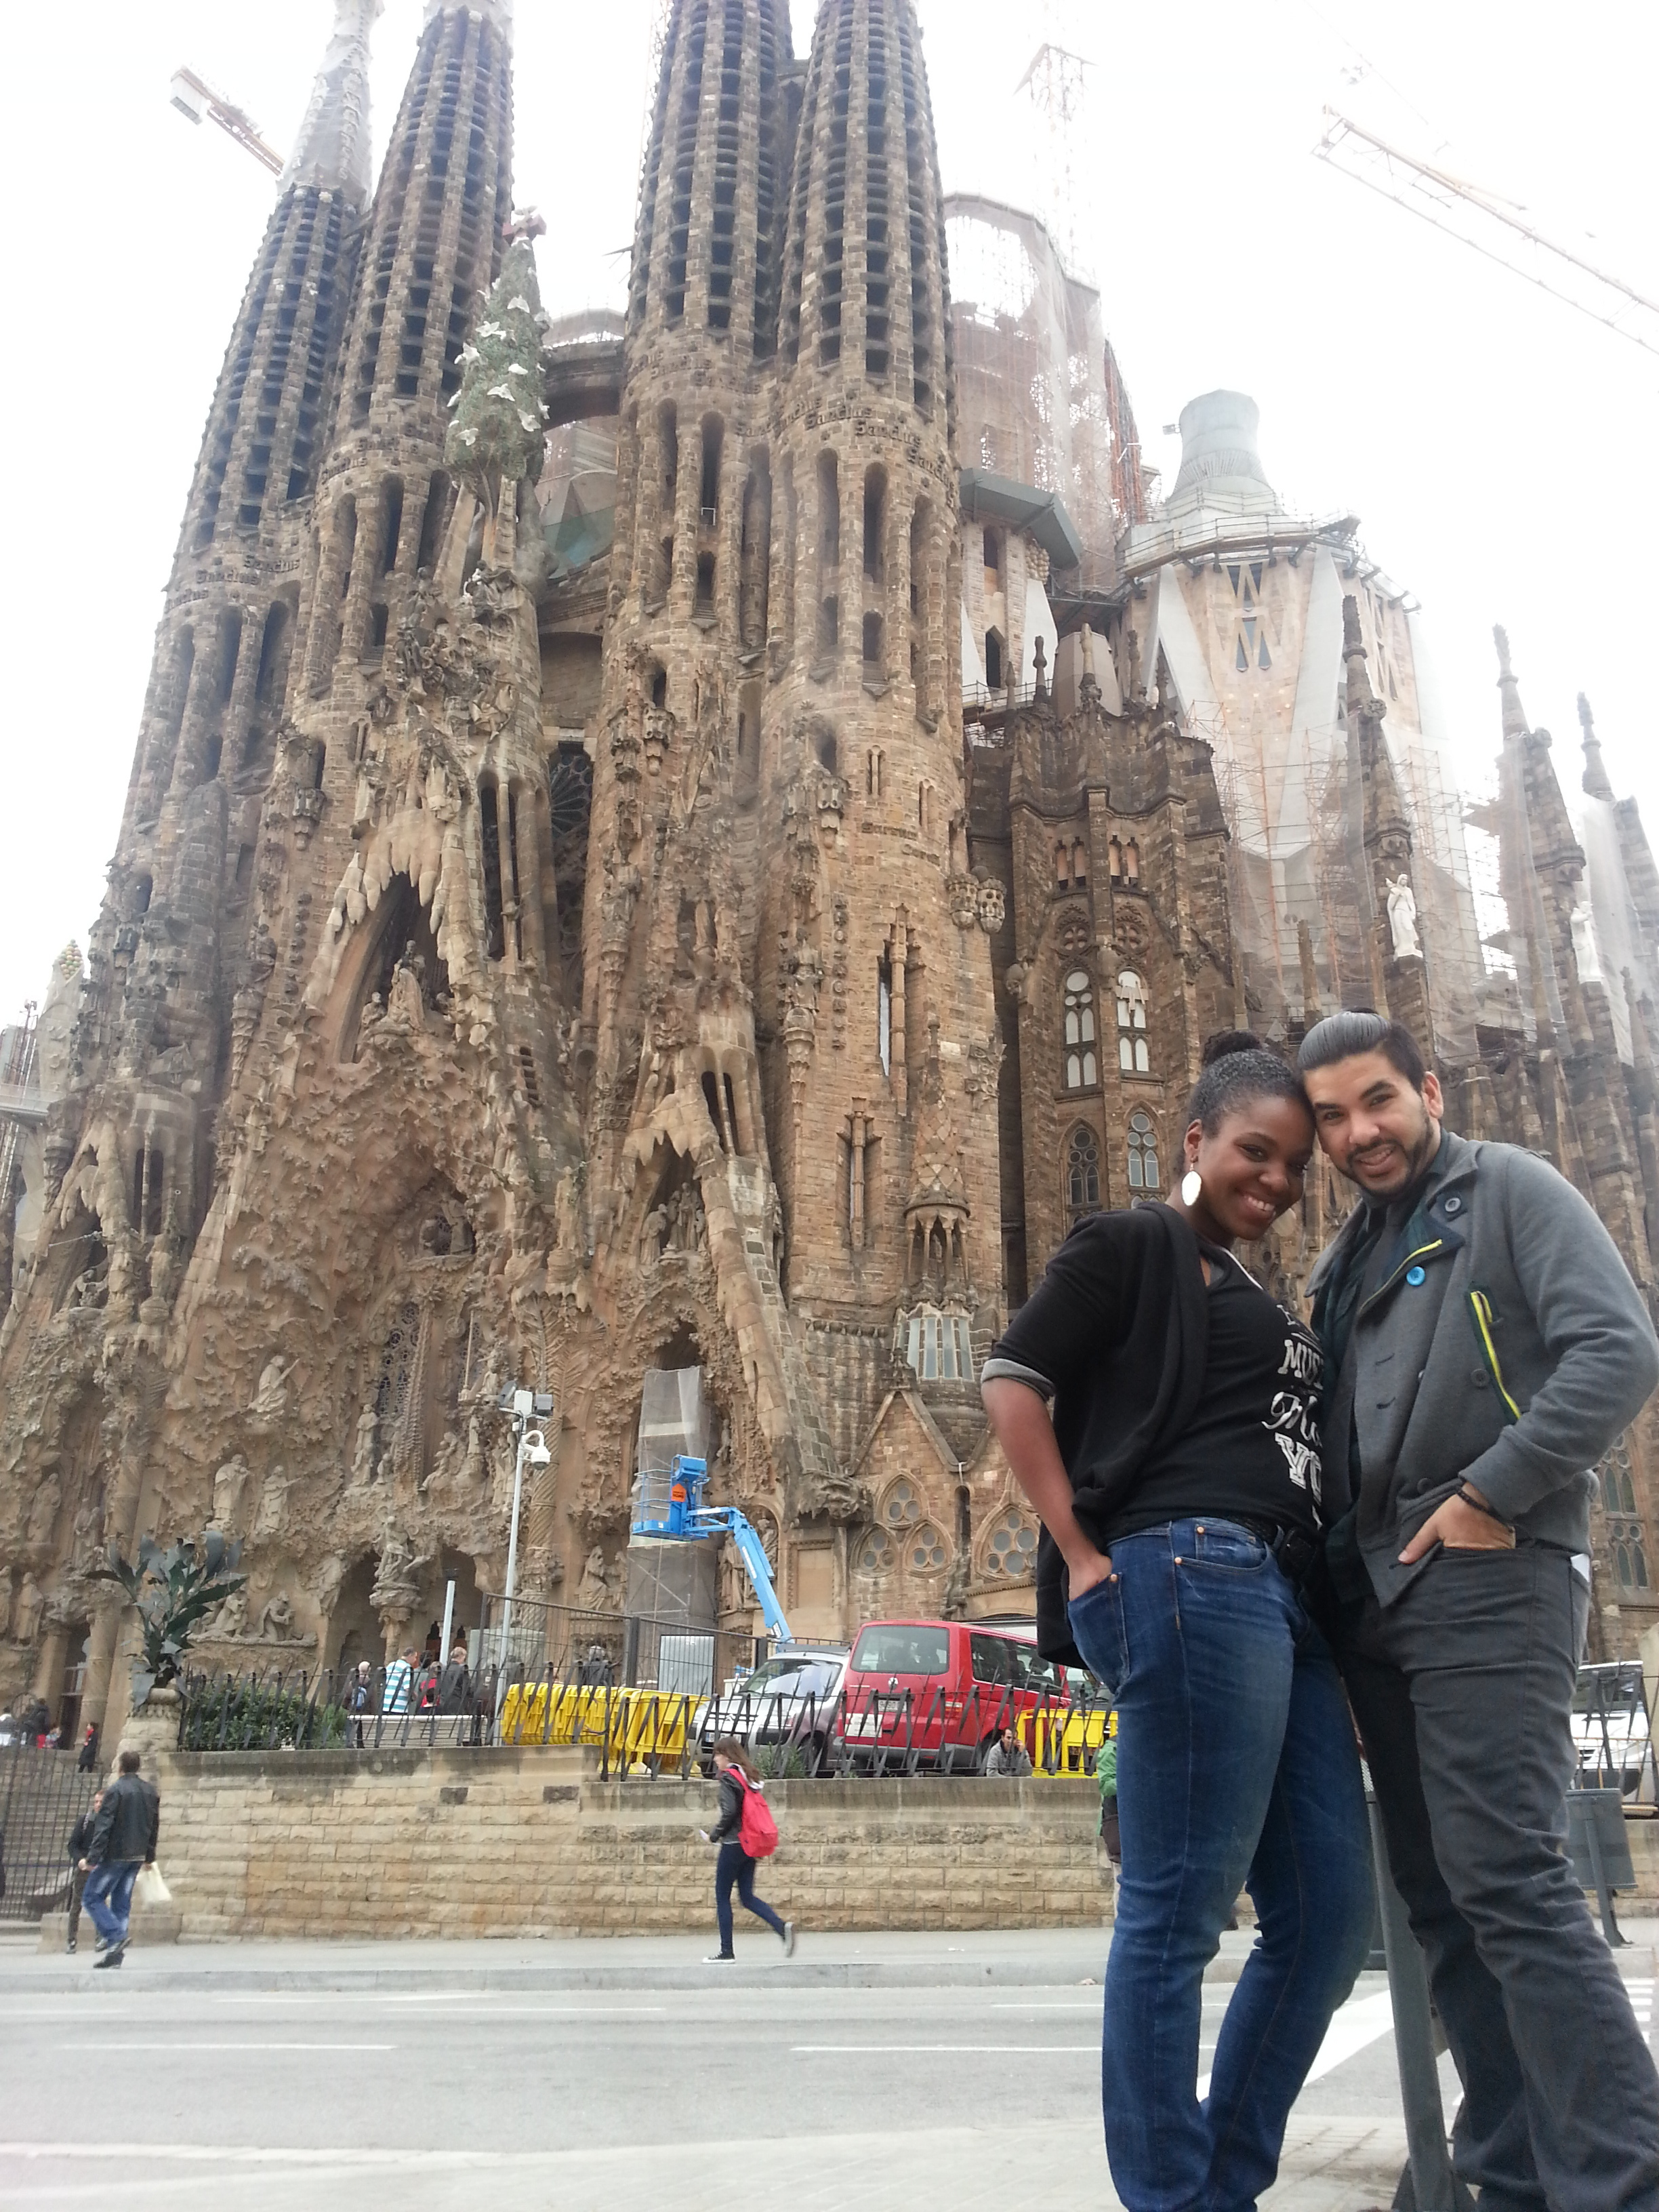 being tourists! :)